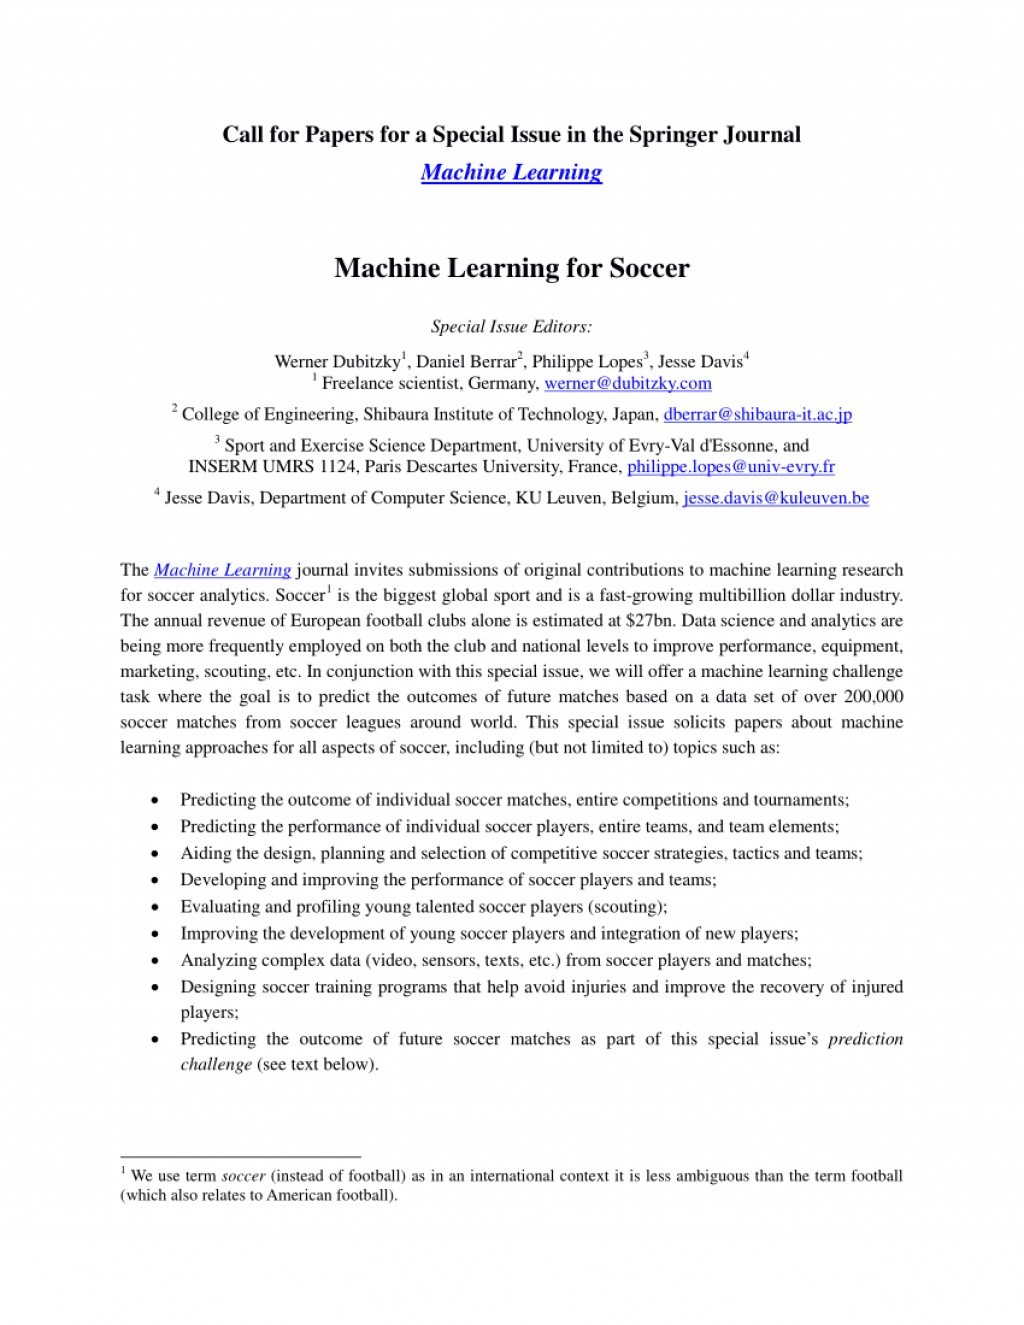 005 Largepreview Research Paper How To Publish In Top Springer Journal Large